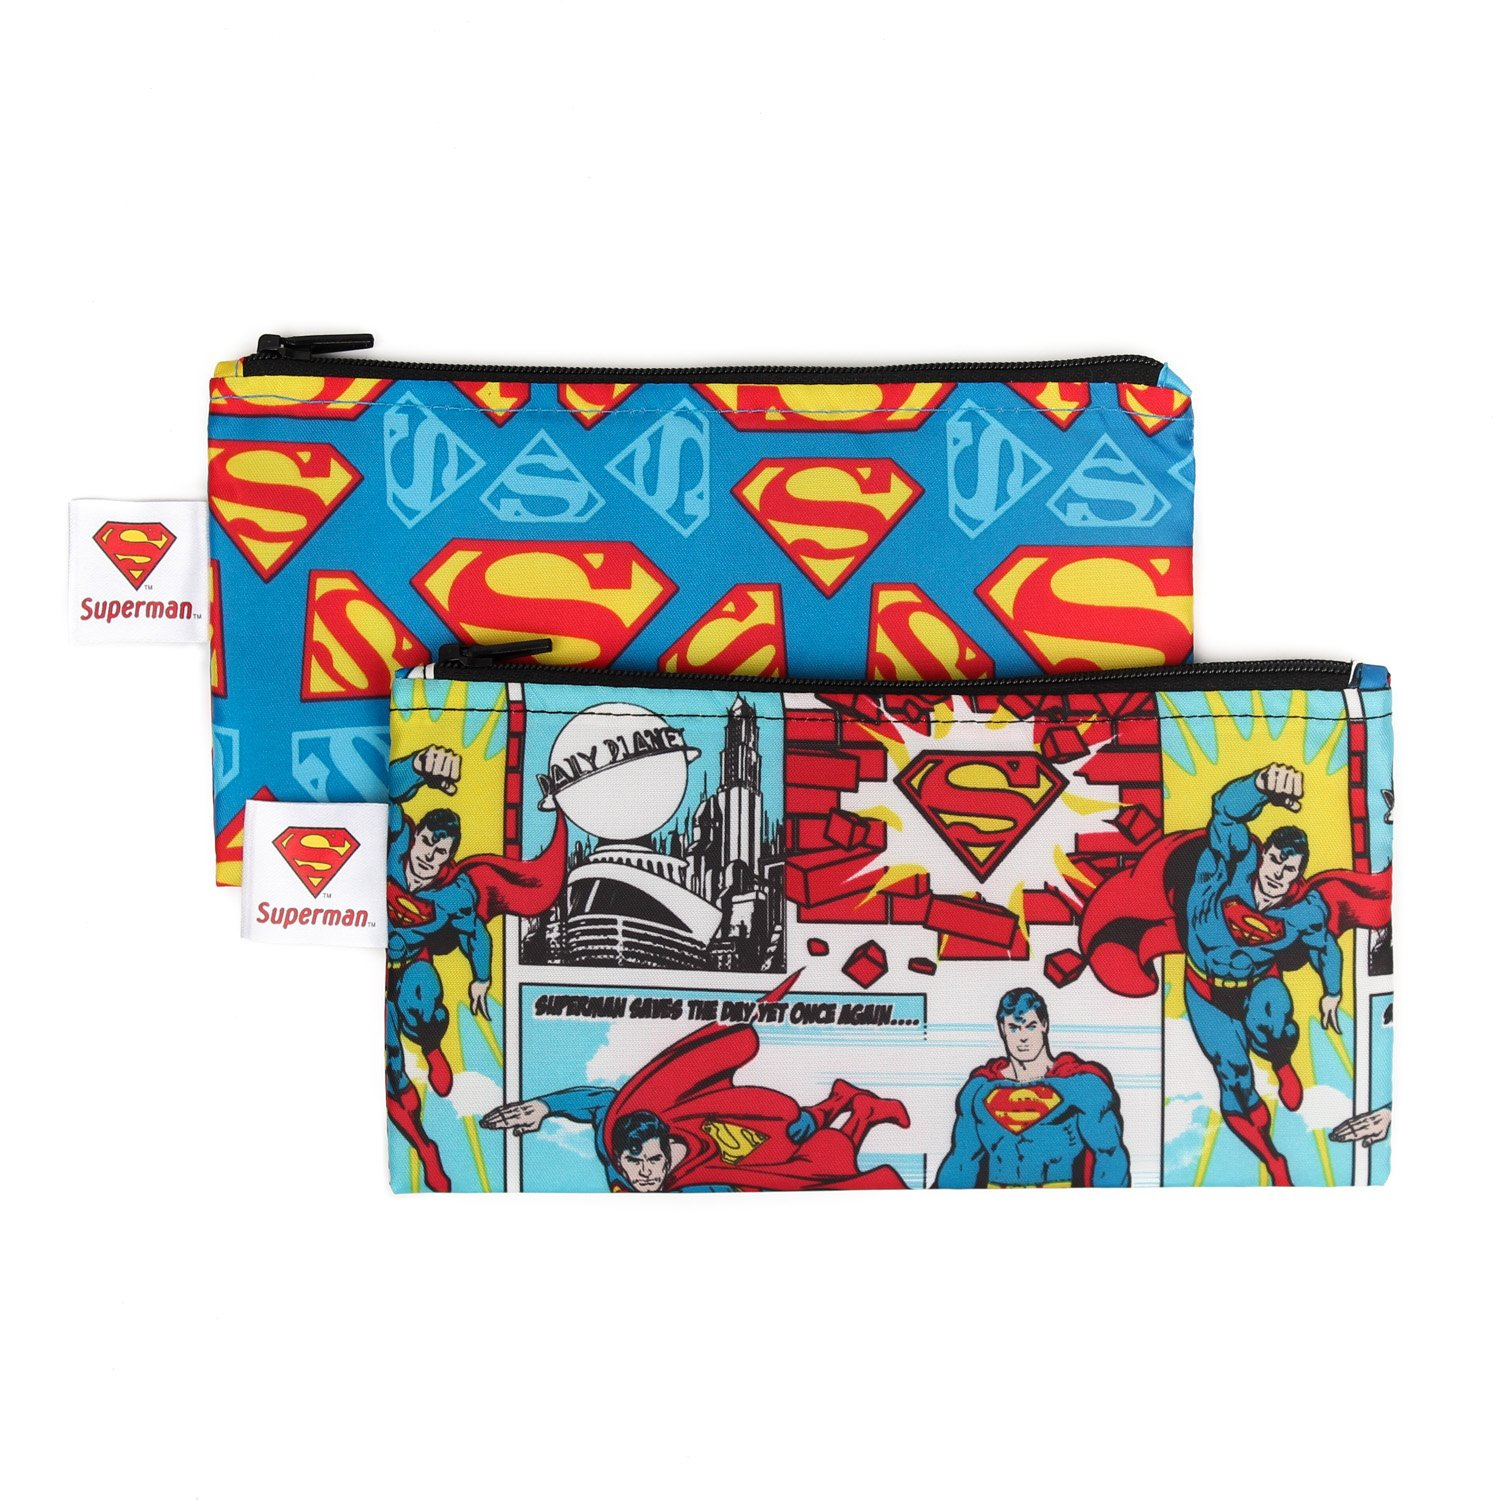 Bumkins DC Comics Reusable Snack Bag Small 2 Pack, Superman SBS2-WBSM